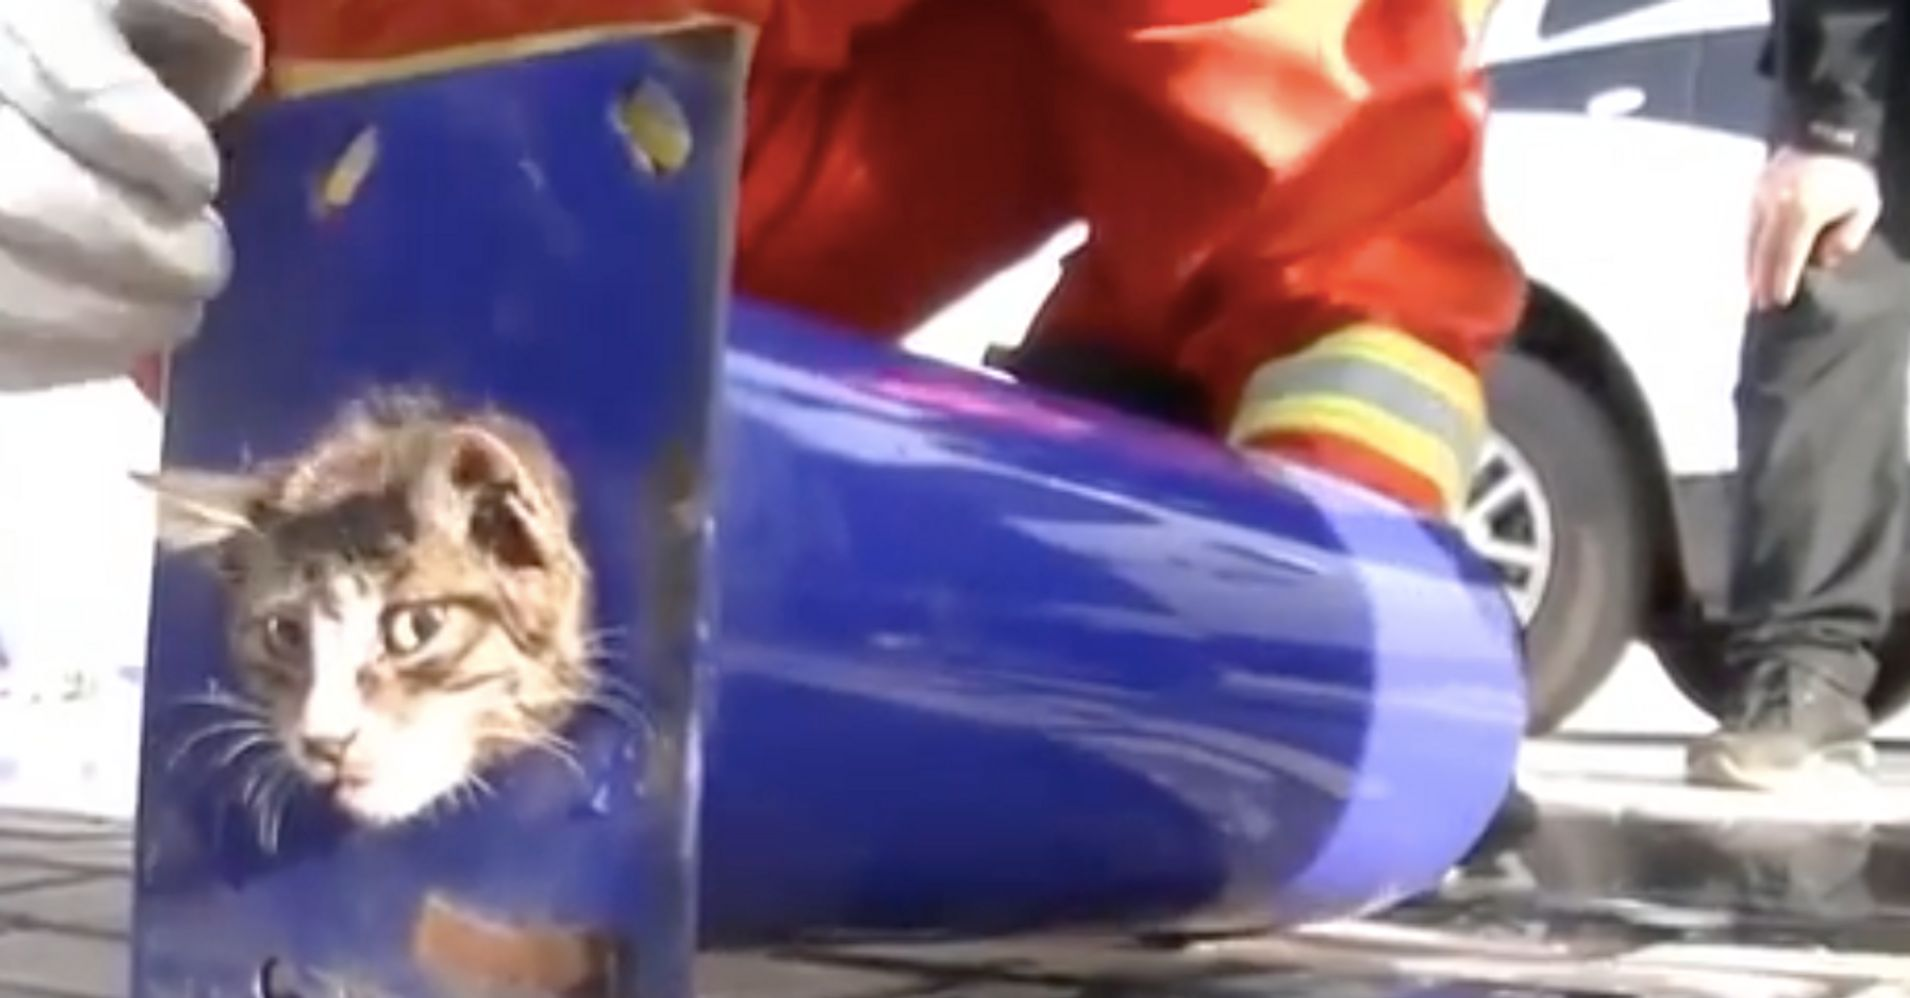 Here's Some Hilarious Commentary On A Cat Stuck In A Pipe - HuffPost